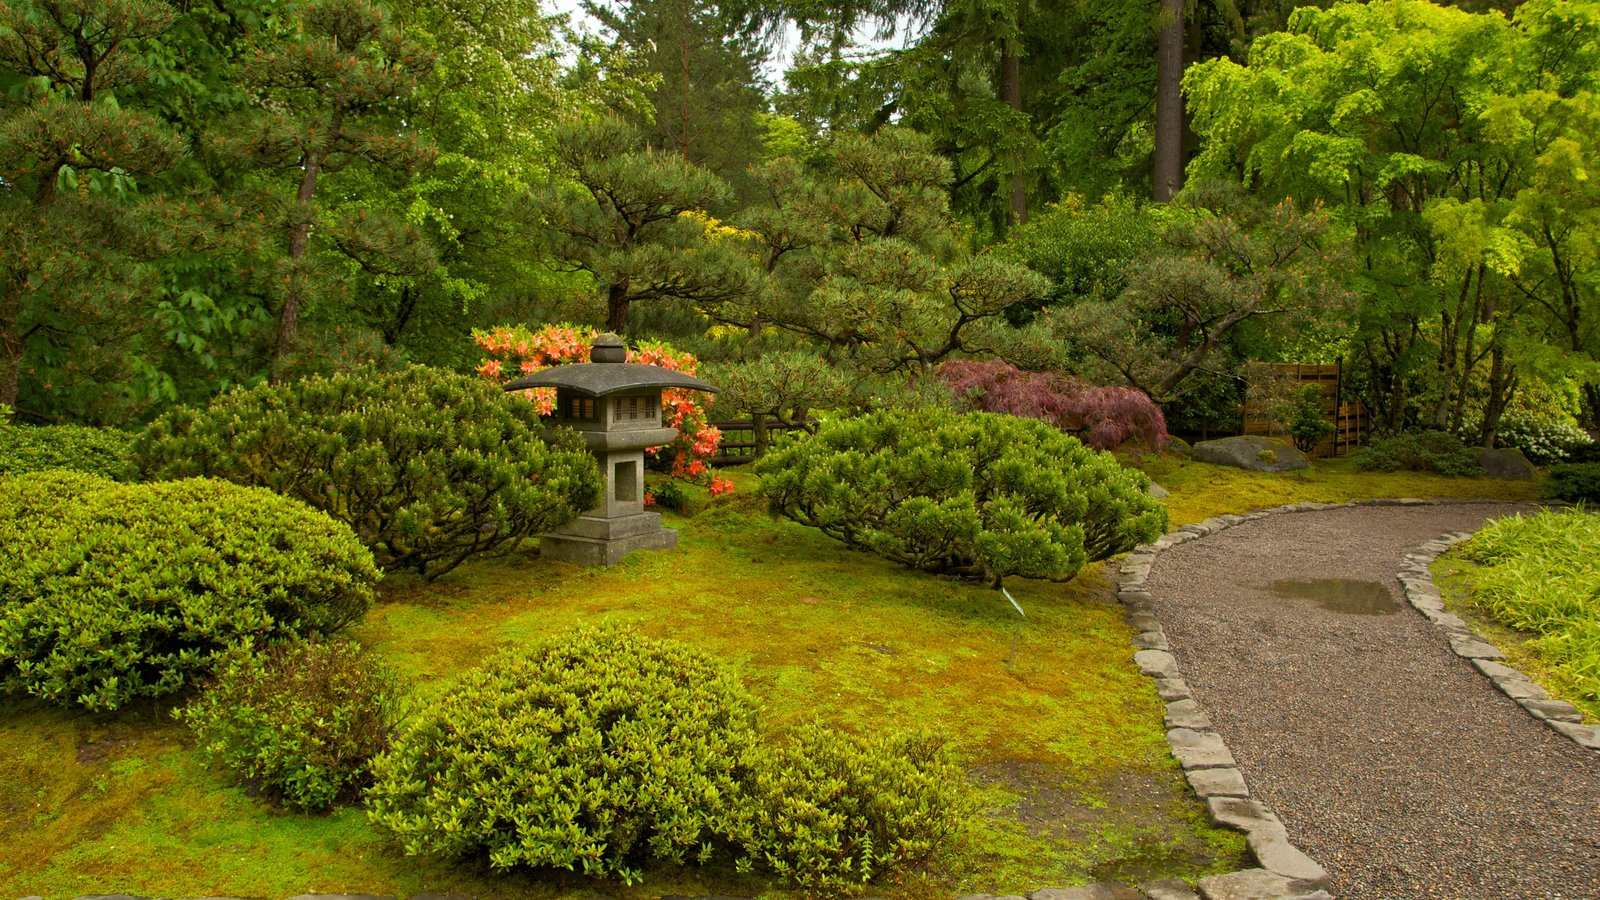 Portland Japanese Garden featuring a park and landscape views